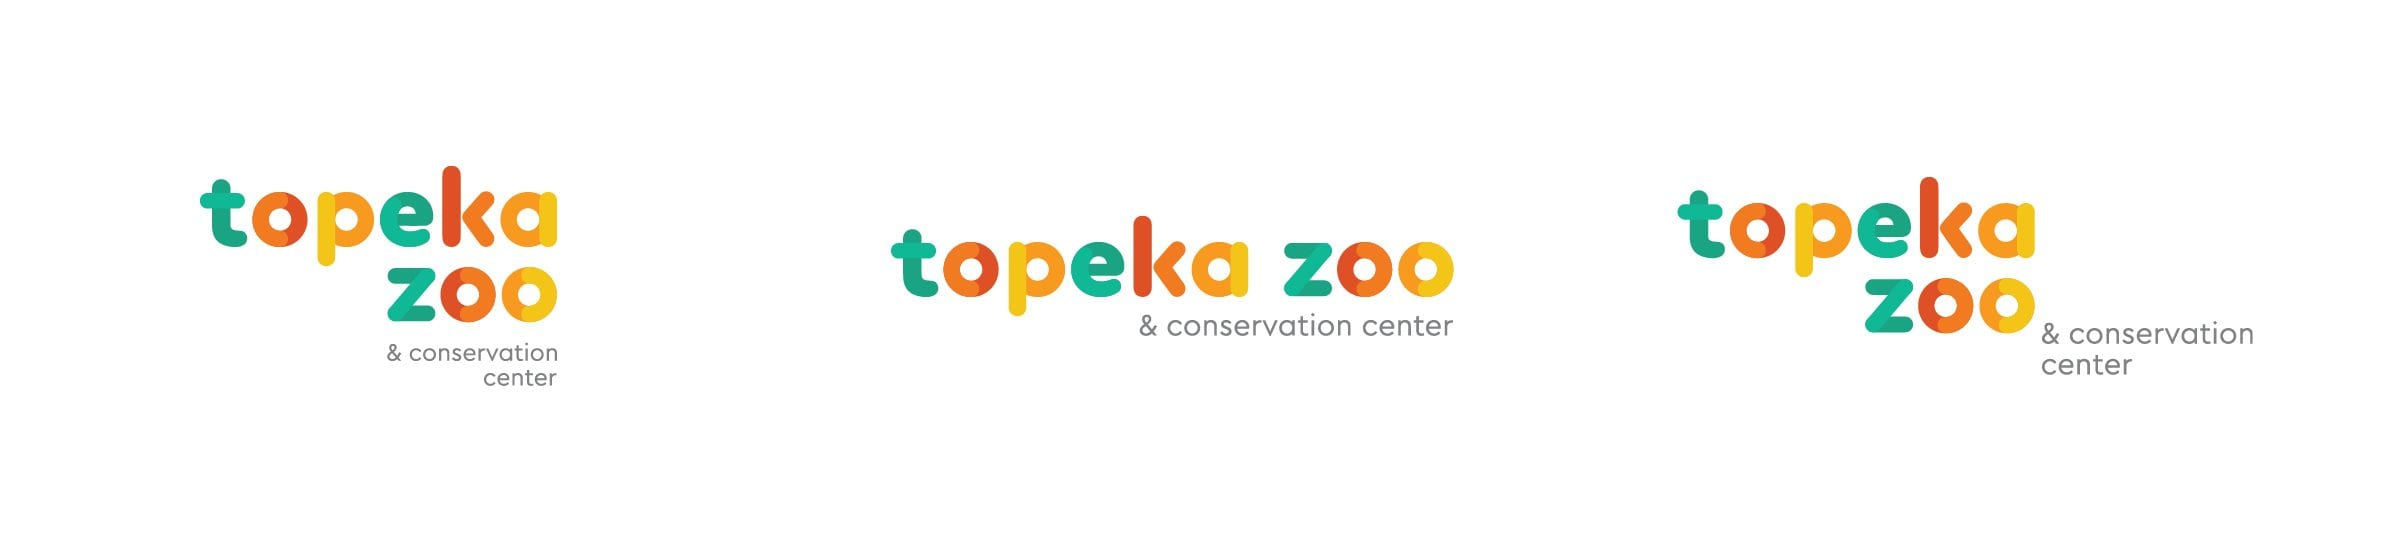 Topeka Zoo & Conservation Center | Case Study